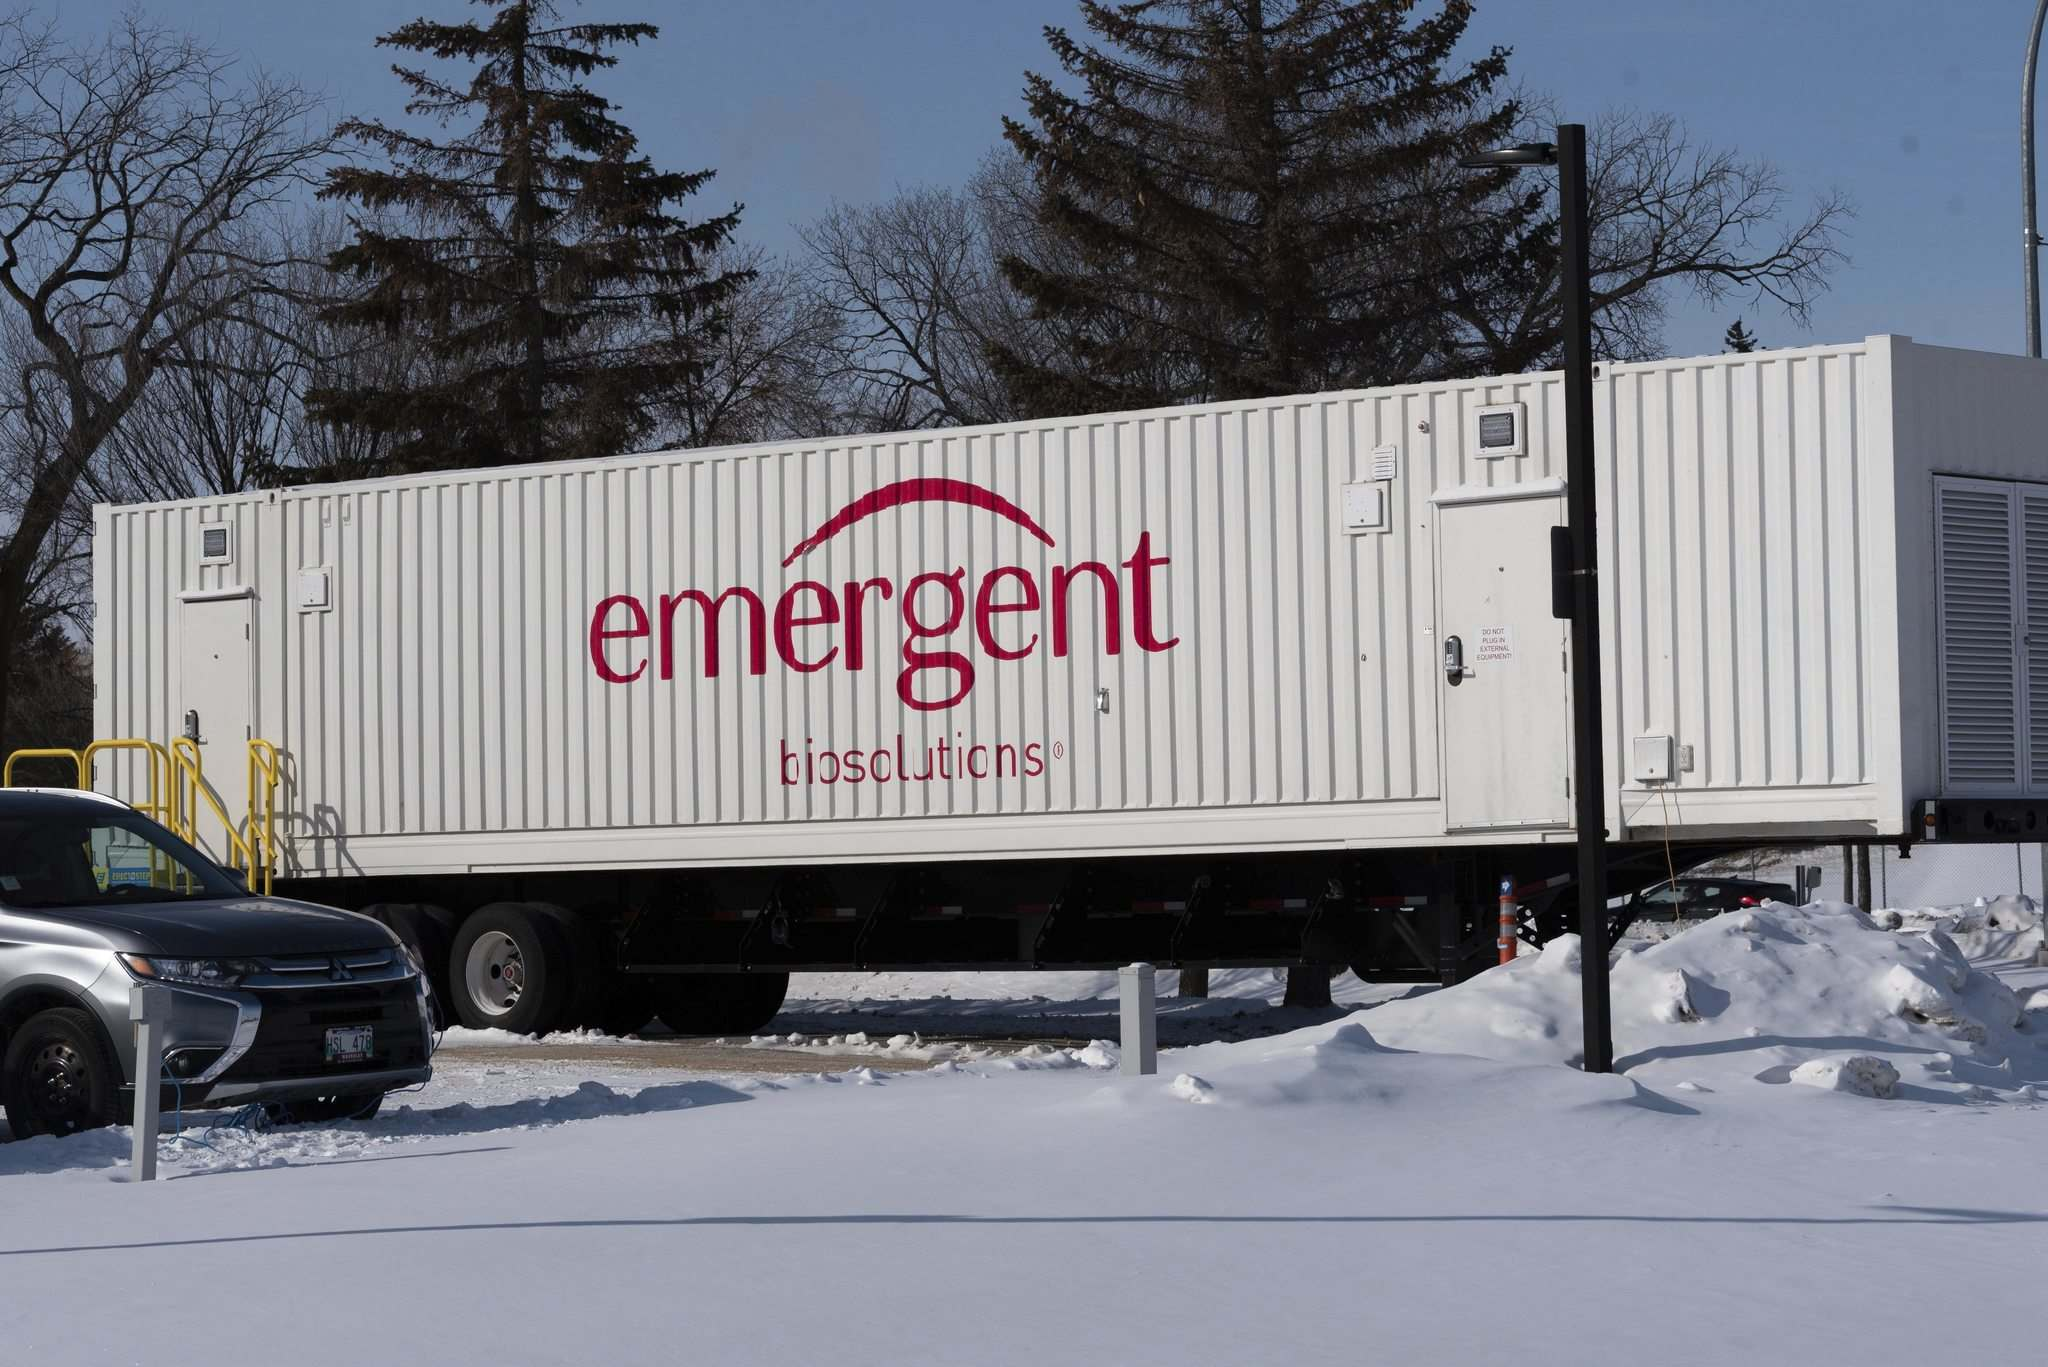 Providence's vaccine would be produced at a Winnipeg facility operated by Emergent BioSolutions.